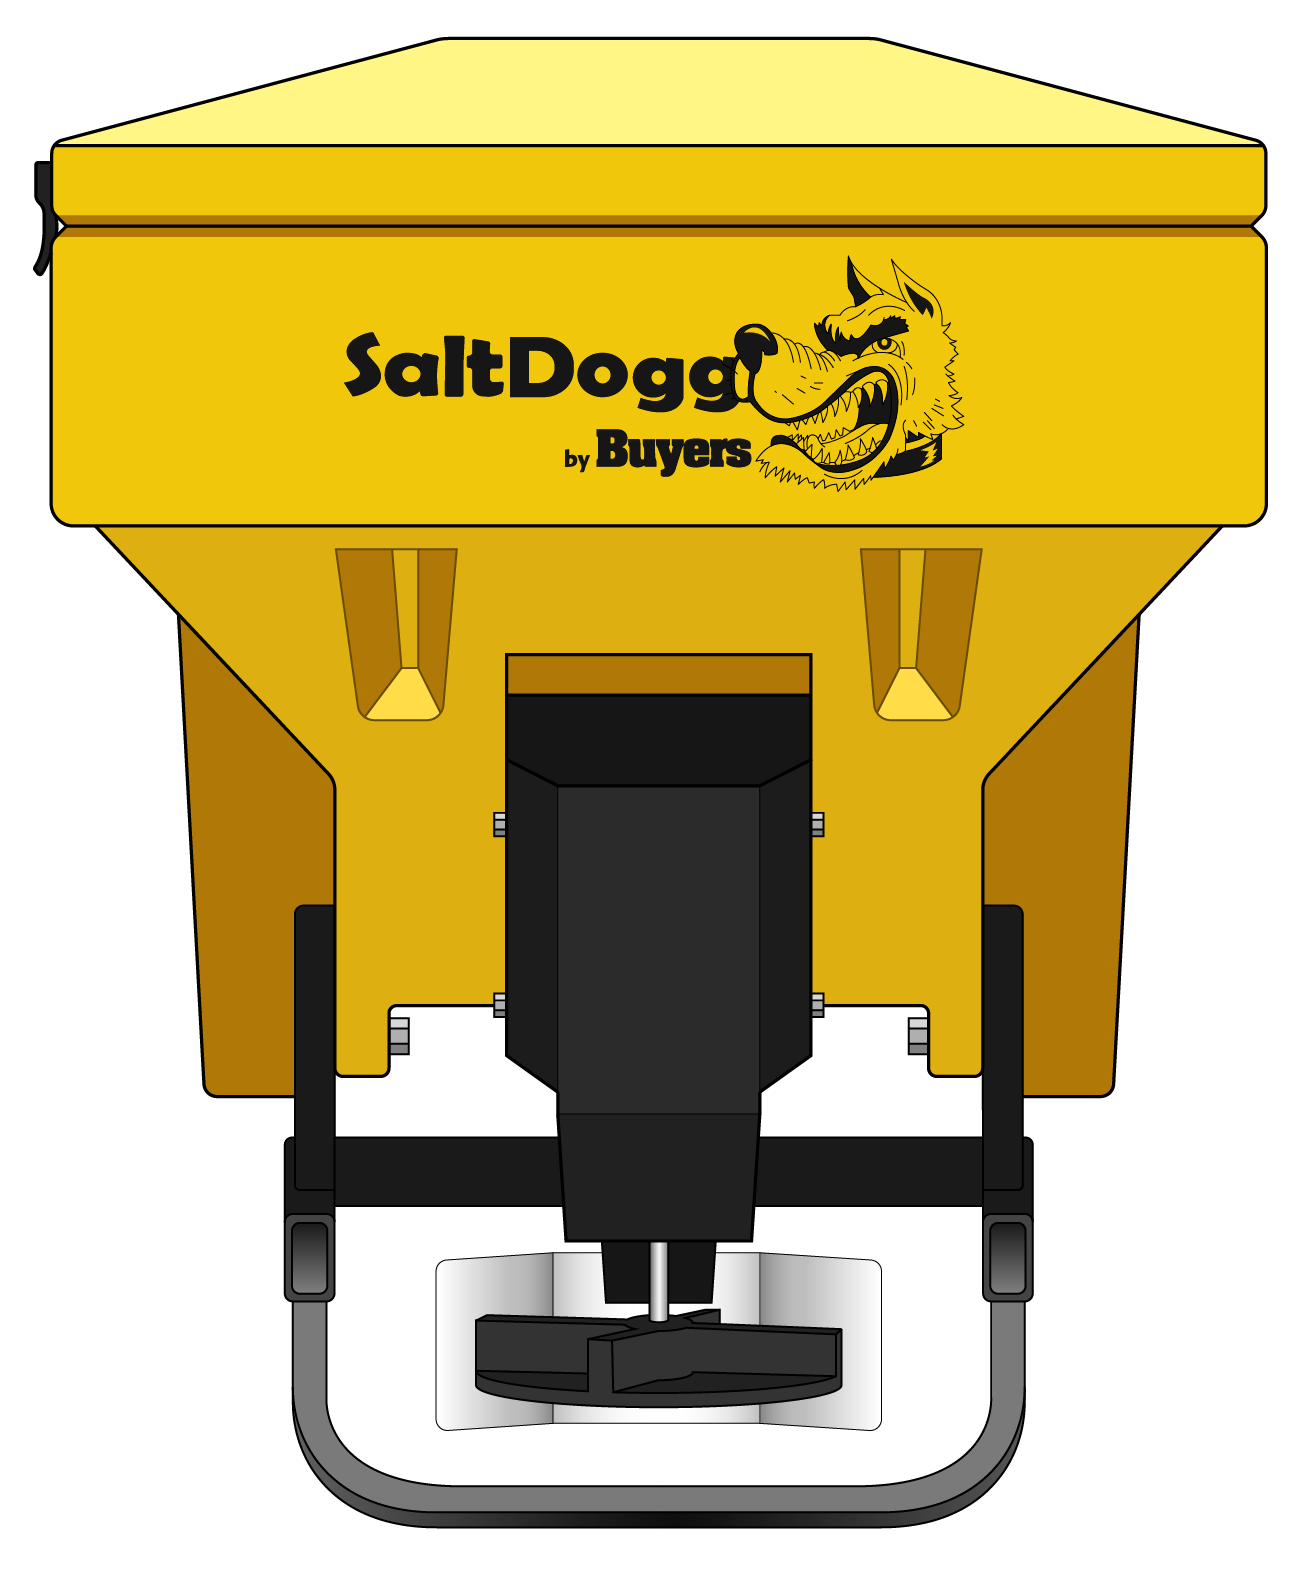 TGS03YEL-S.A.M. SaltDogg TGS03 8.0 Cubic Foot Yellow Polymer Electric Tailgate Spreader